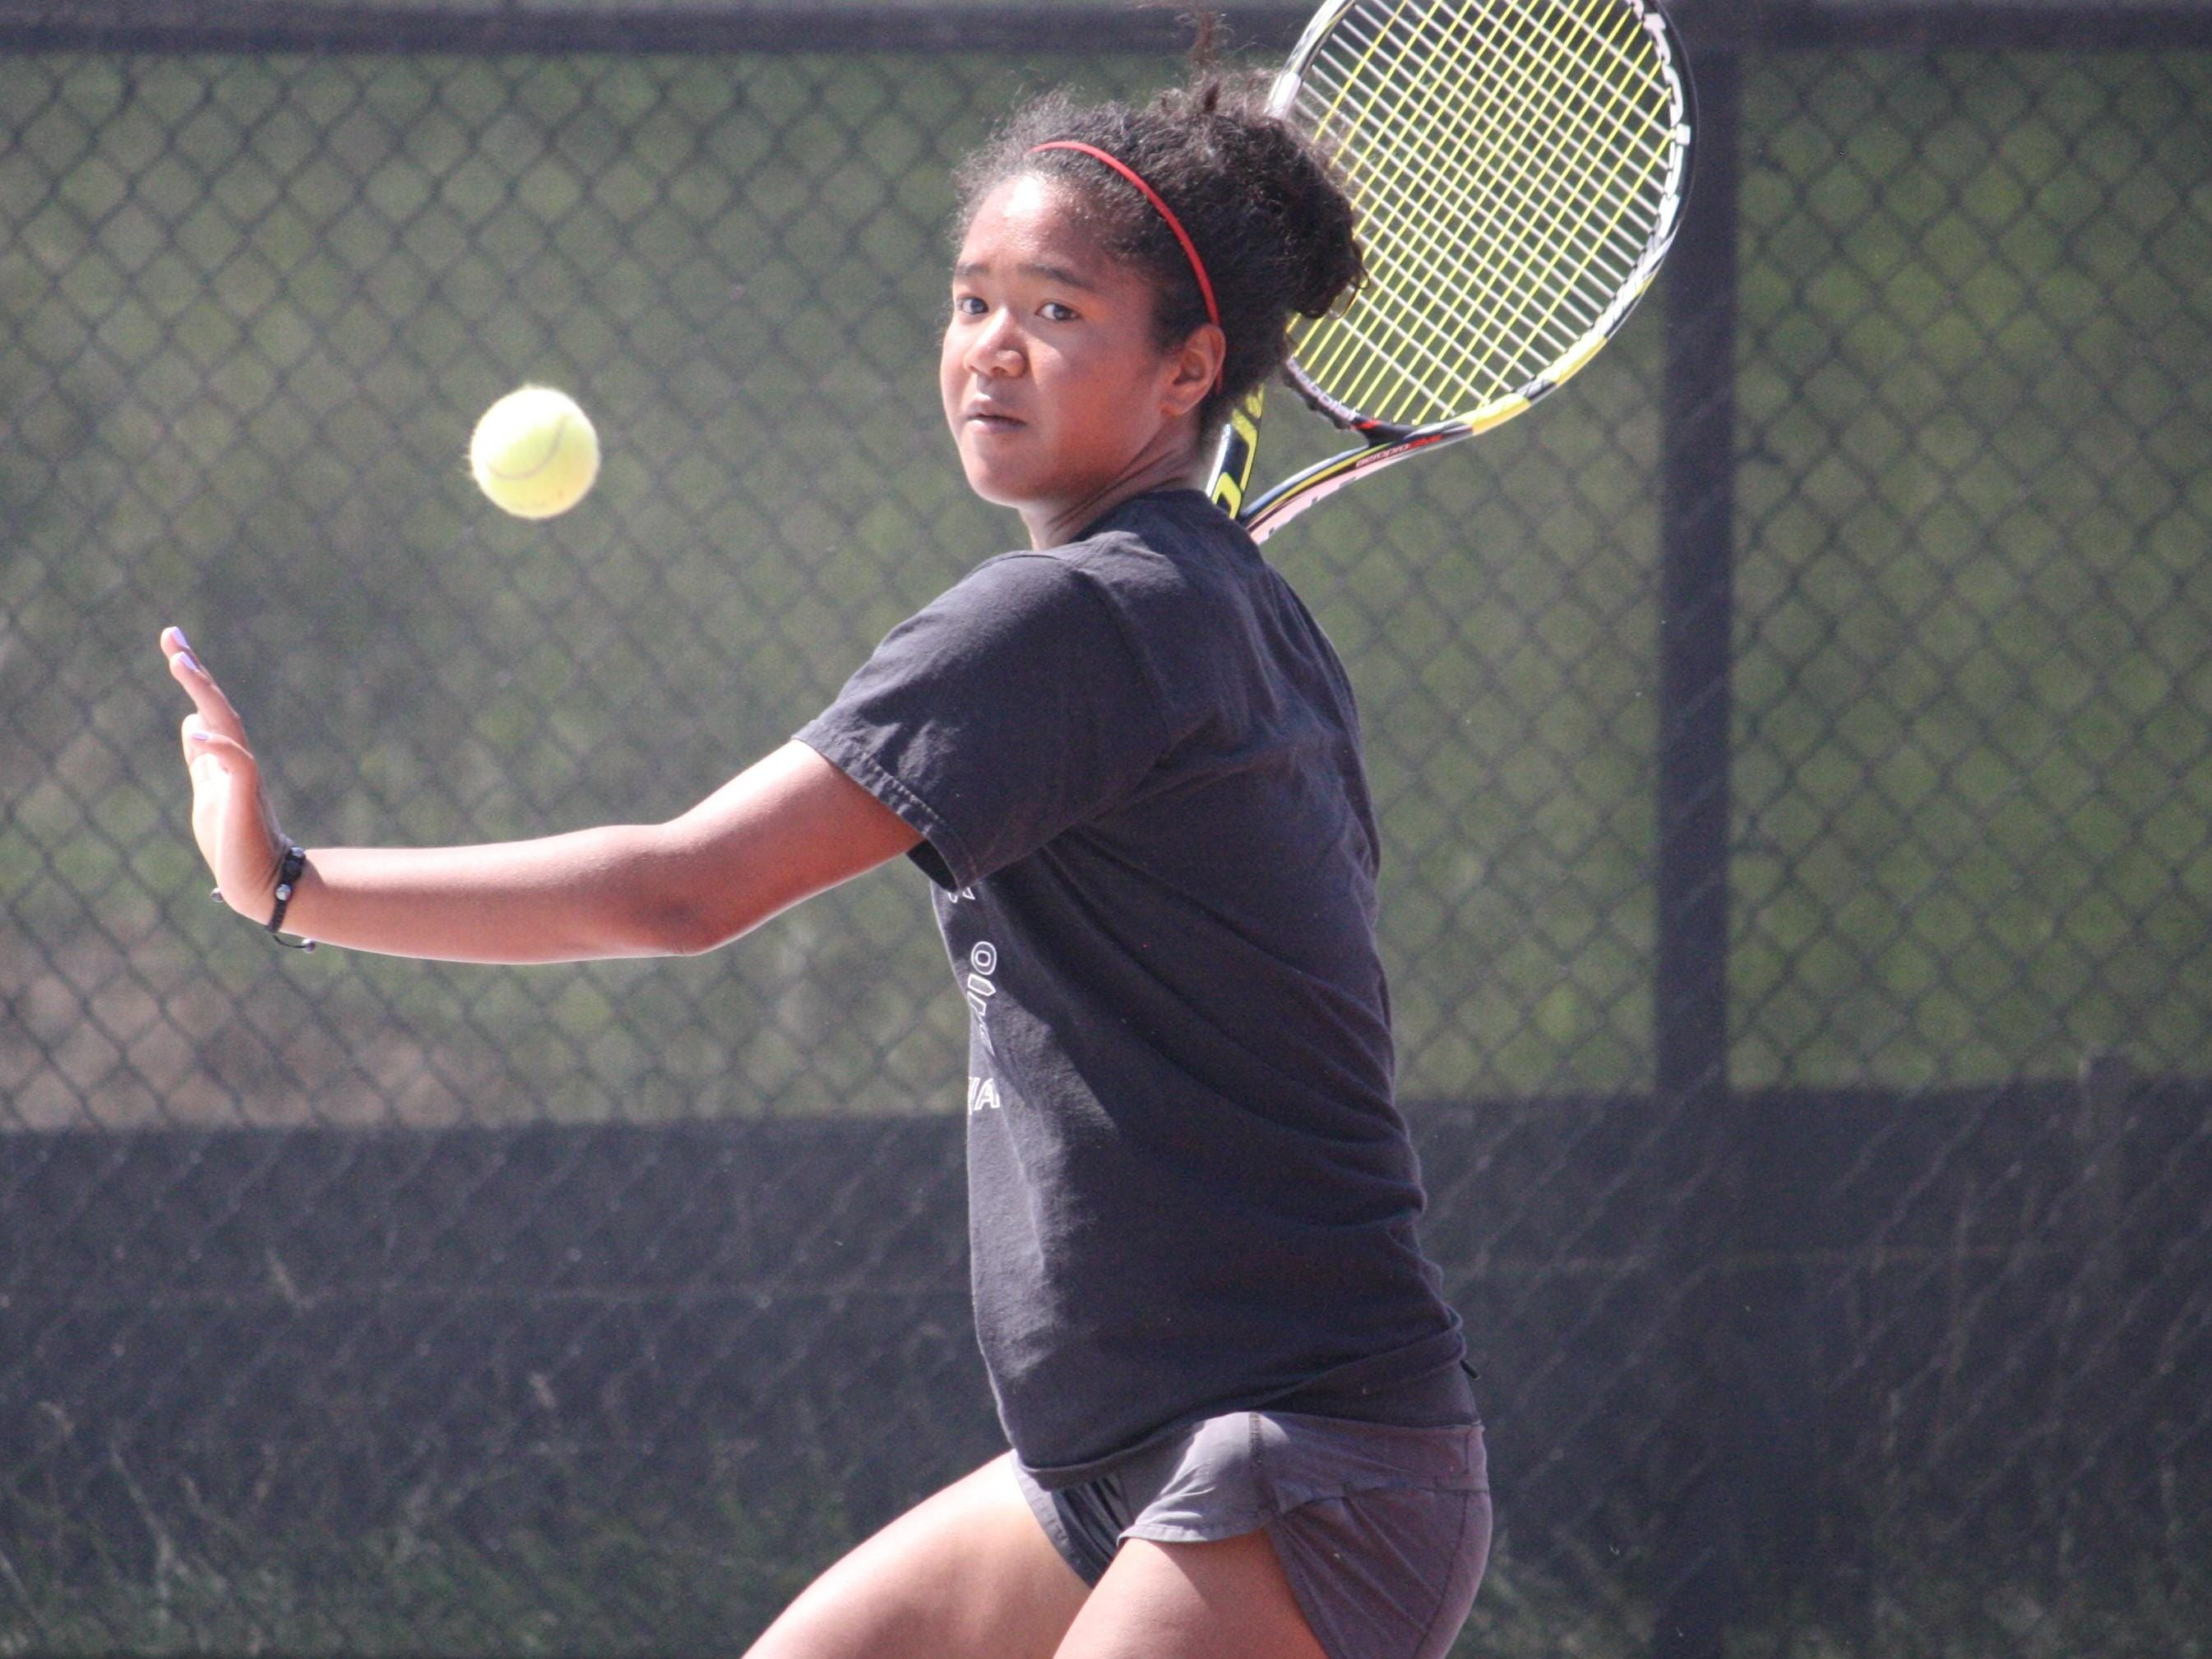 Princeton High School sophomore tennis standout Emily Thomas gets some work in at practice on Aug. 5. As a freshman, Thomas was a state singles qualifier and the Greater Miami Conference Player of the Year.